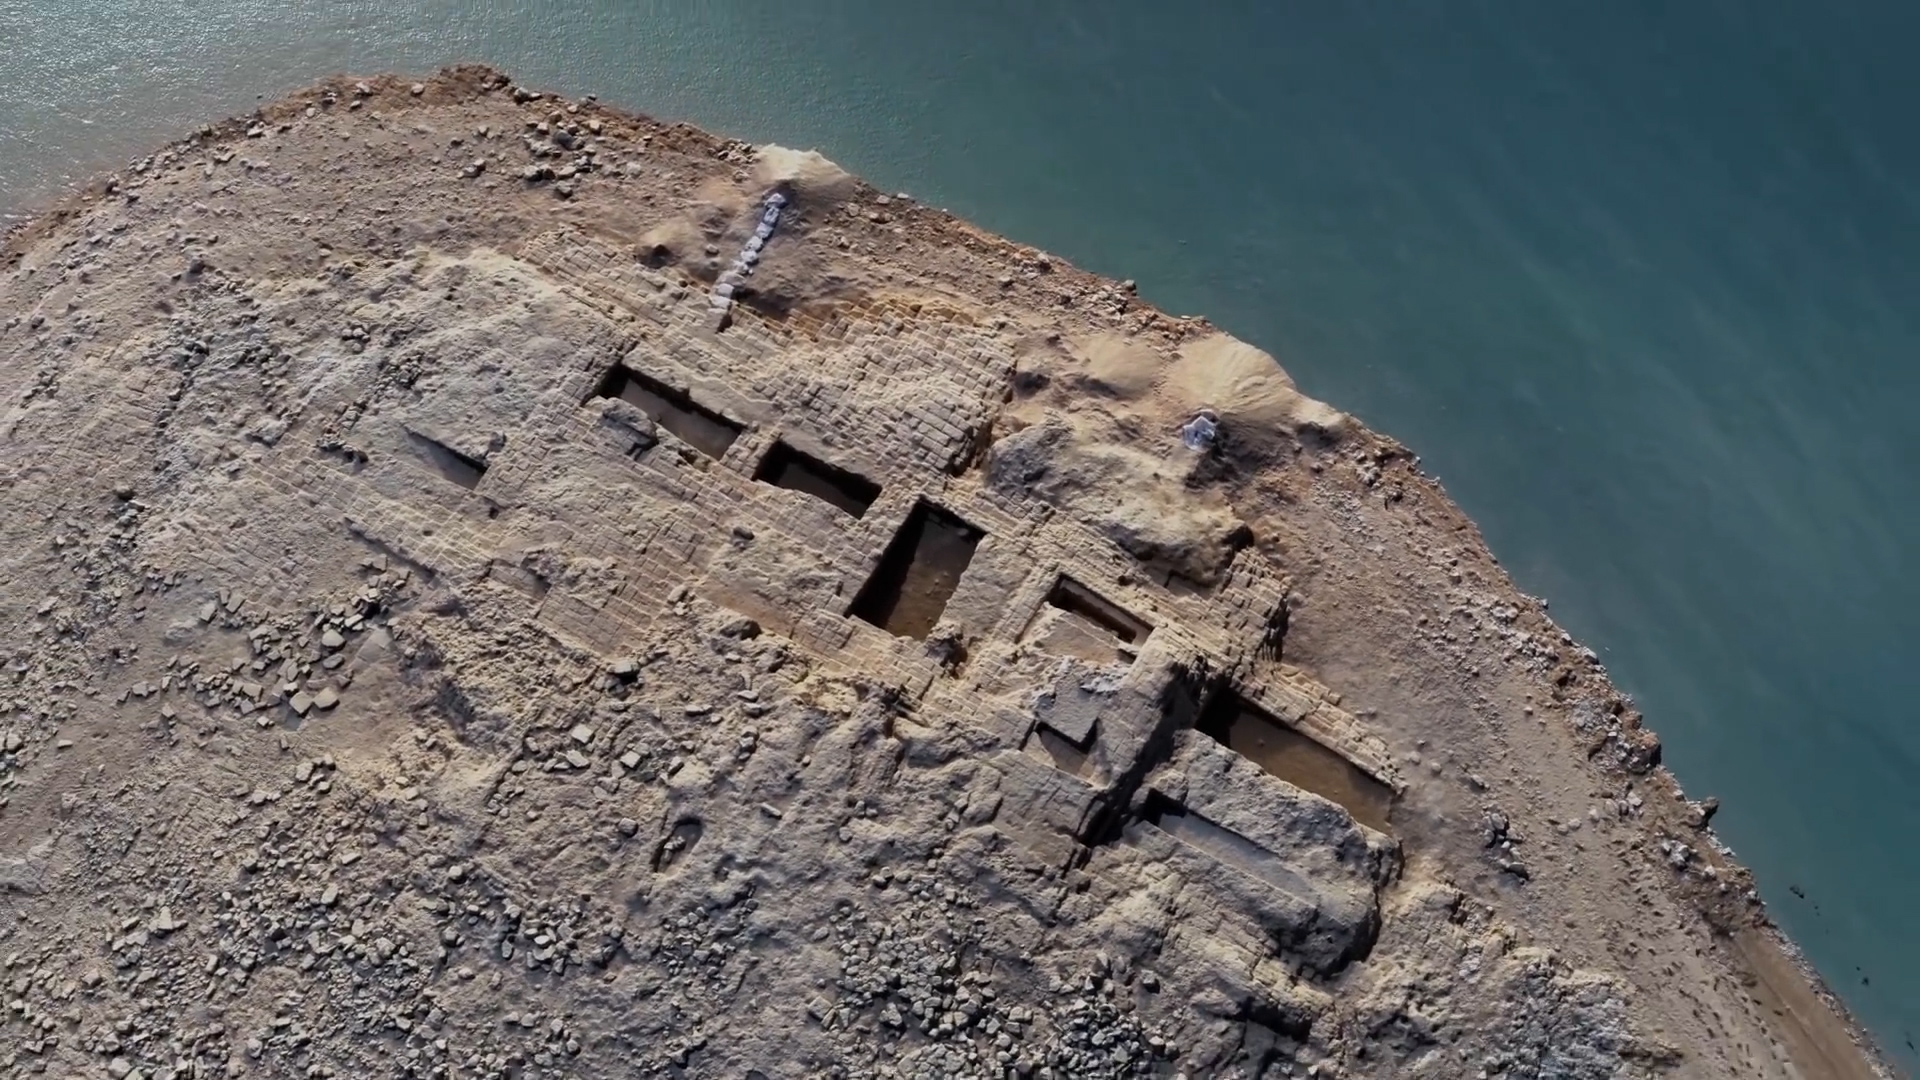 A drought revealed a palace thousands of years old submerged in an Iraq reservoir